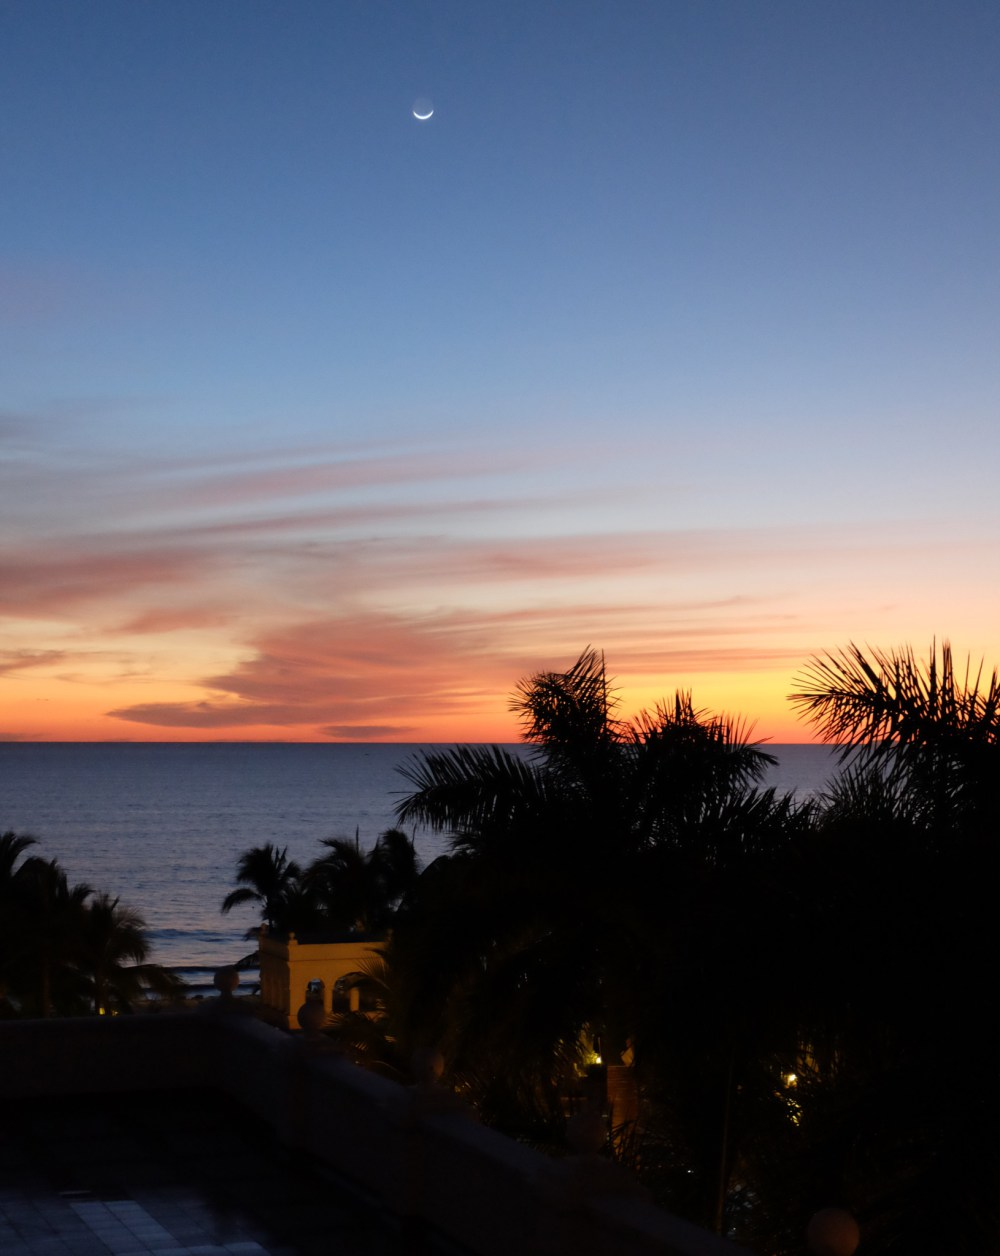 Sunset at the Riu Palace Pacifico